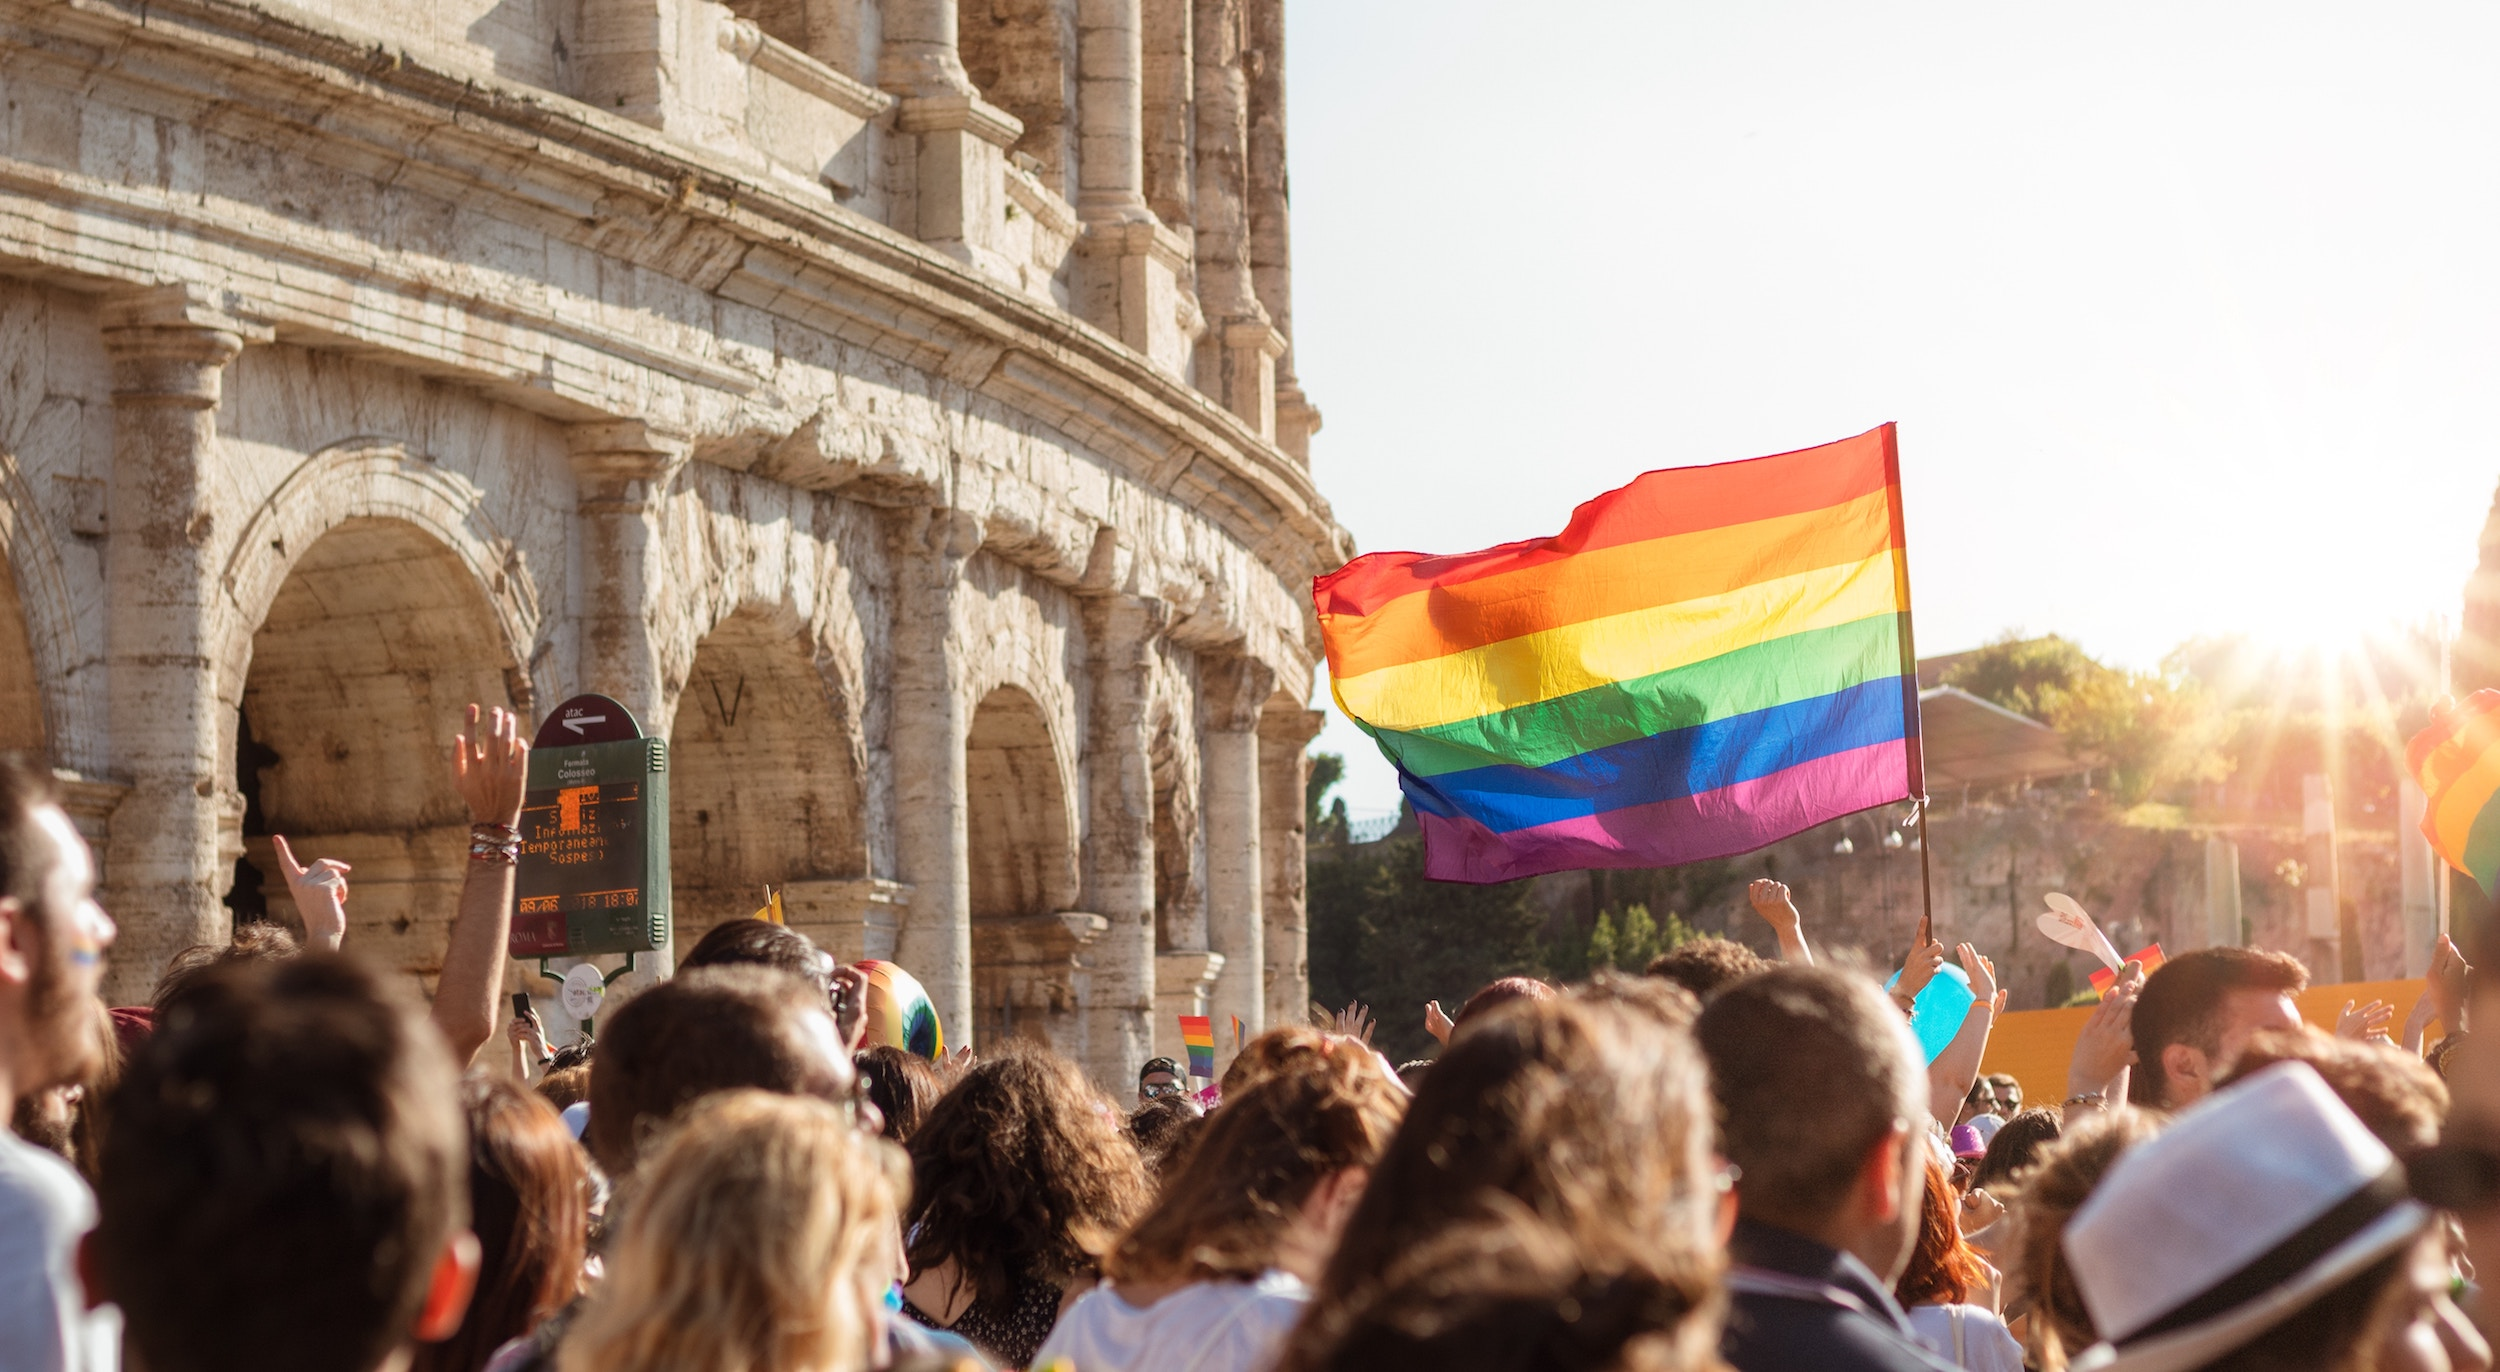 Group of people in Rome, Italy walking with rainbow Pride flag